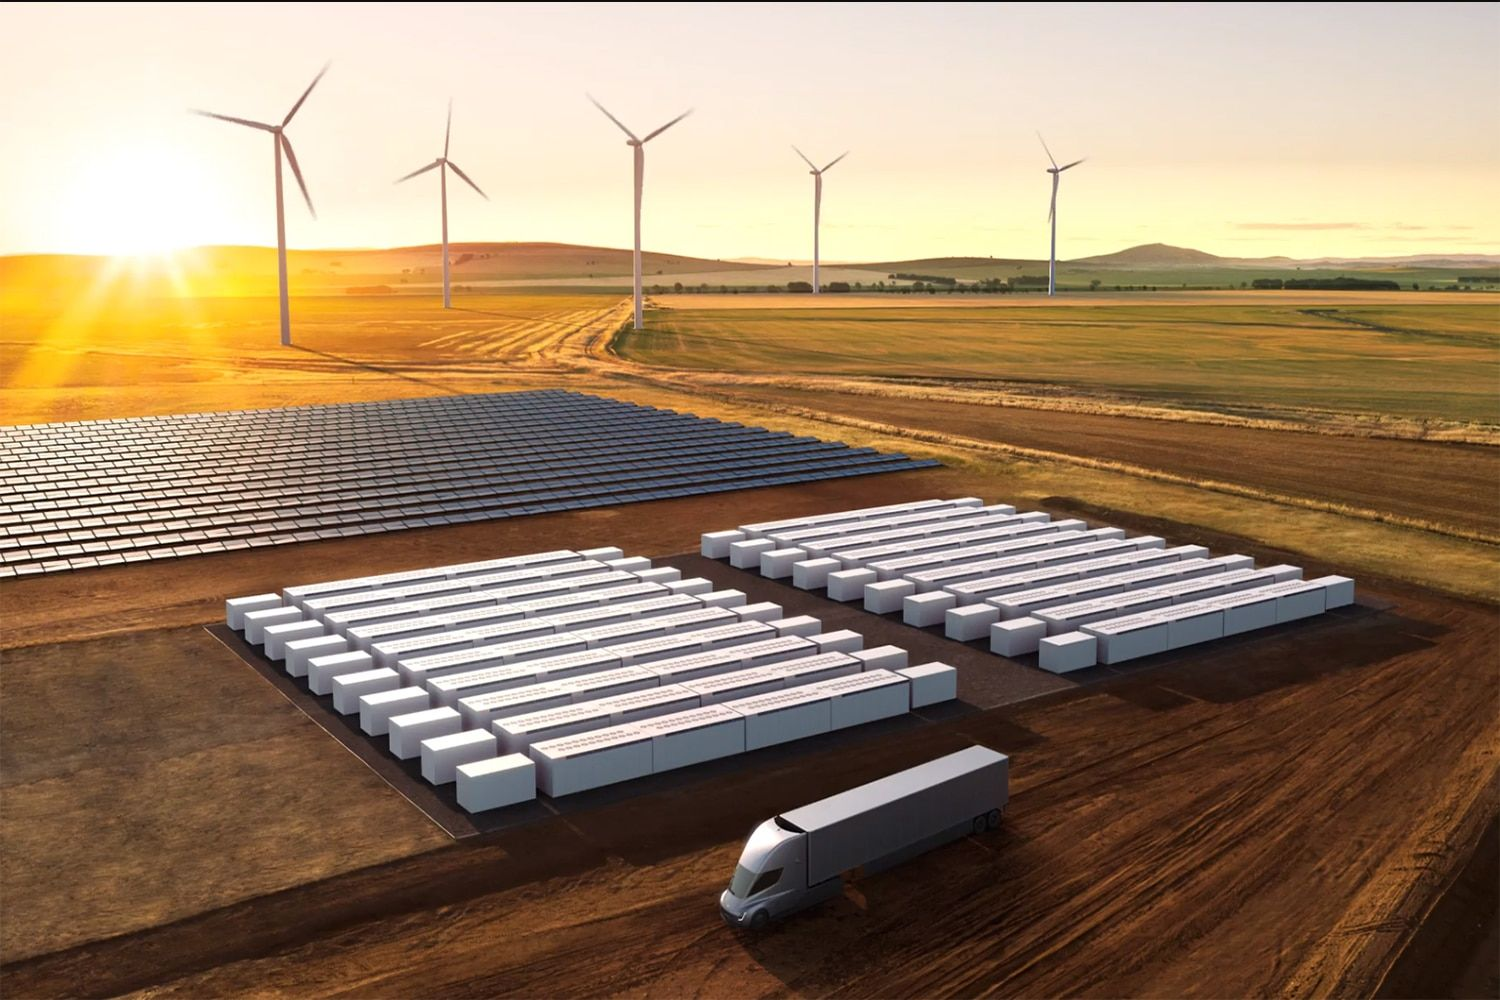 Tesla launches Megapack, a massive battery storage for